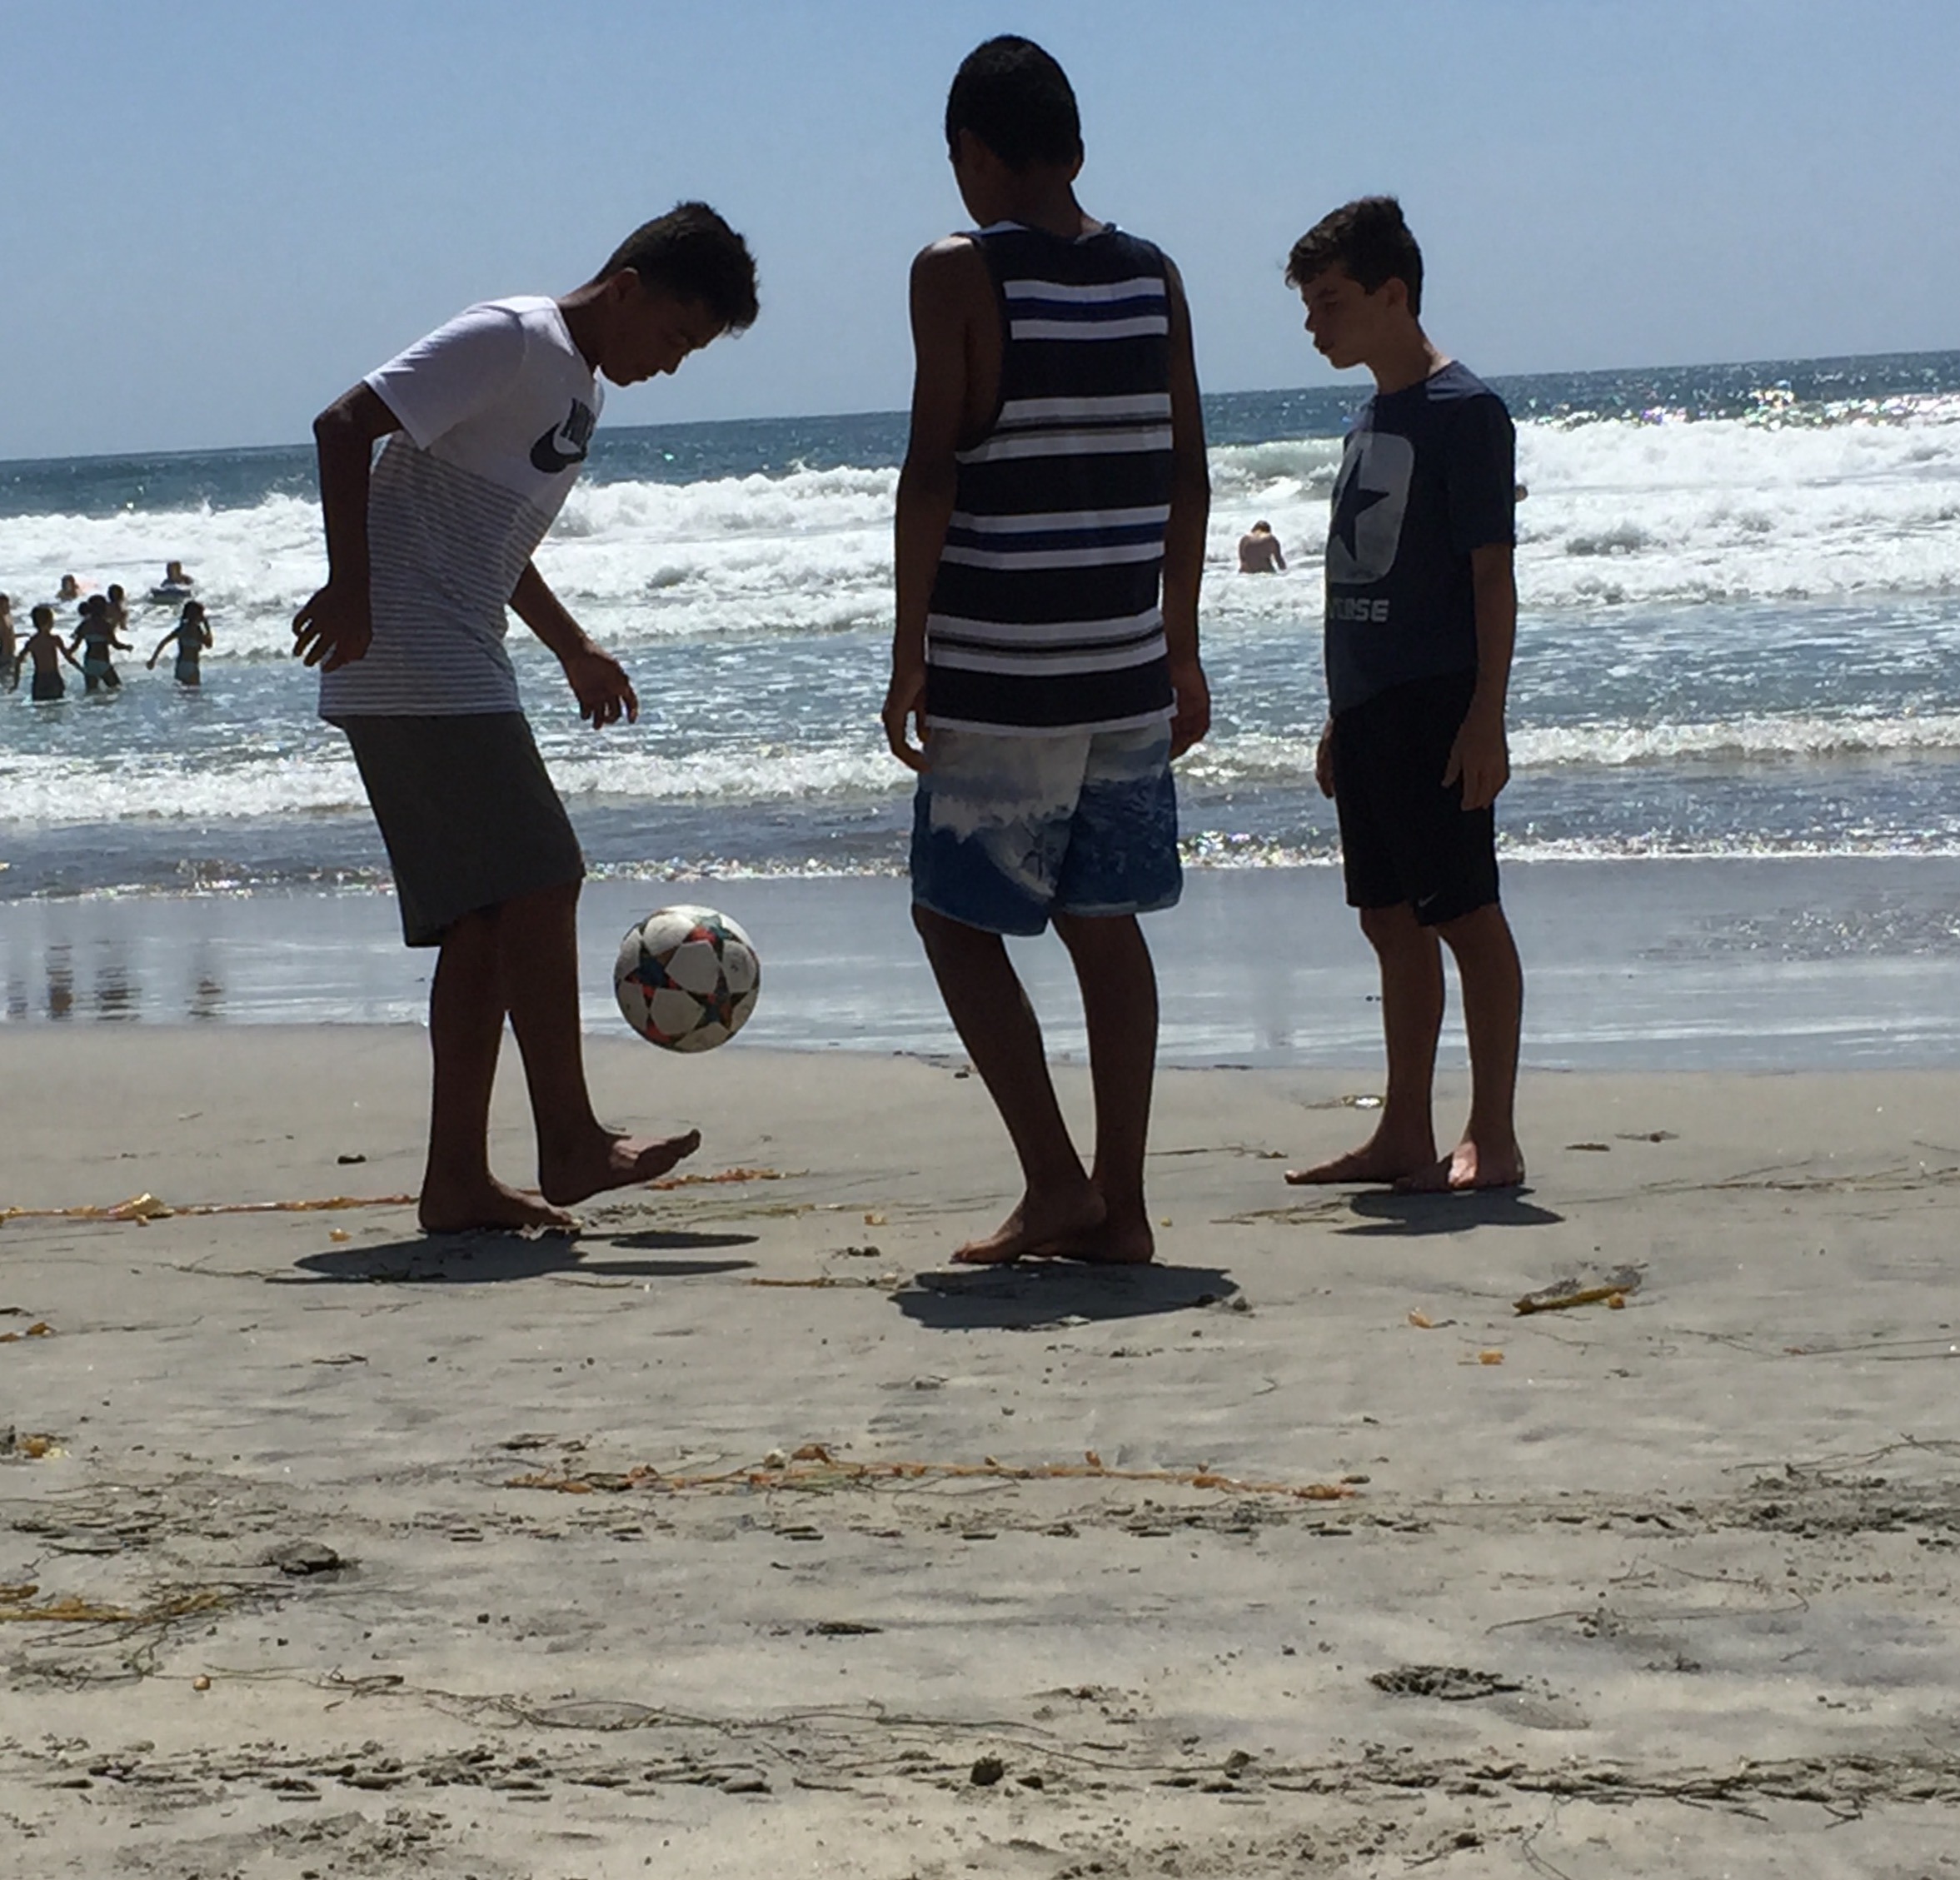 Desmond Wendt (on the right) juggling the ball with his friends on a beach in San Diego. Looks to me like they're doing just fine.  Photo by Dennie Wendt